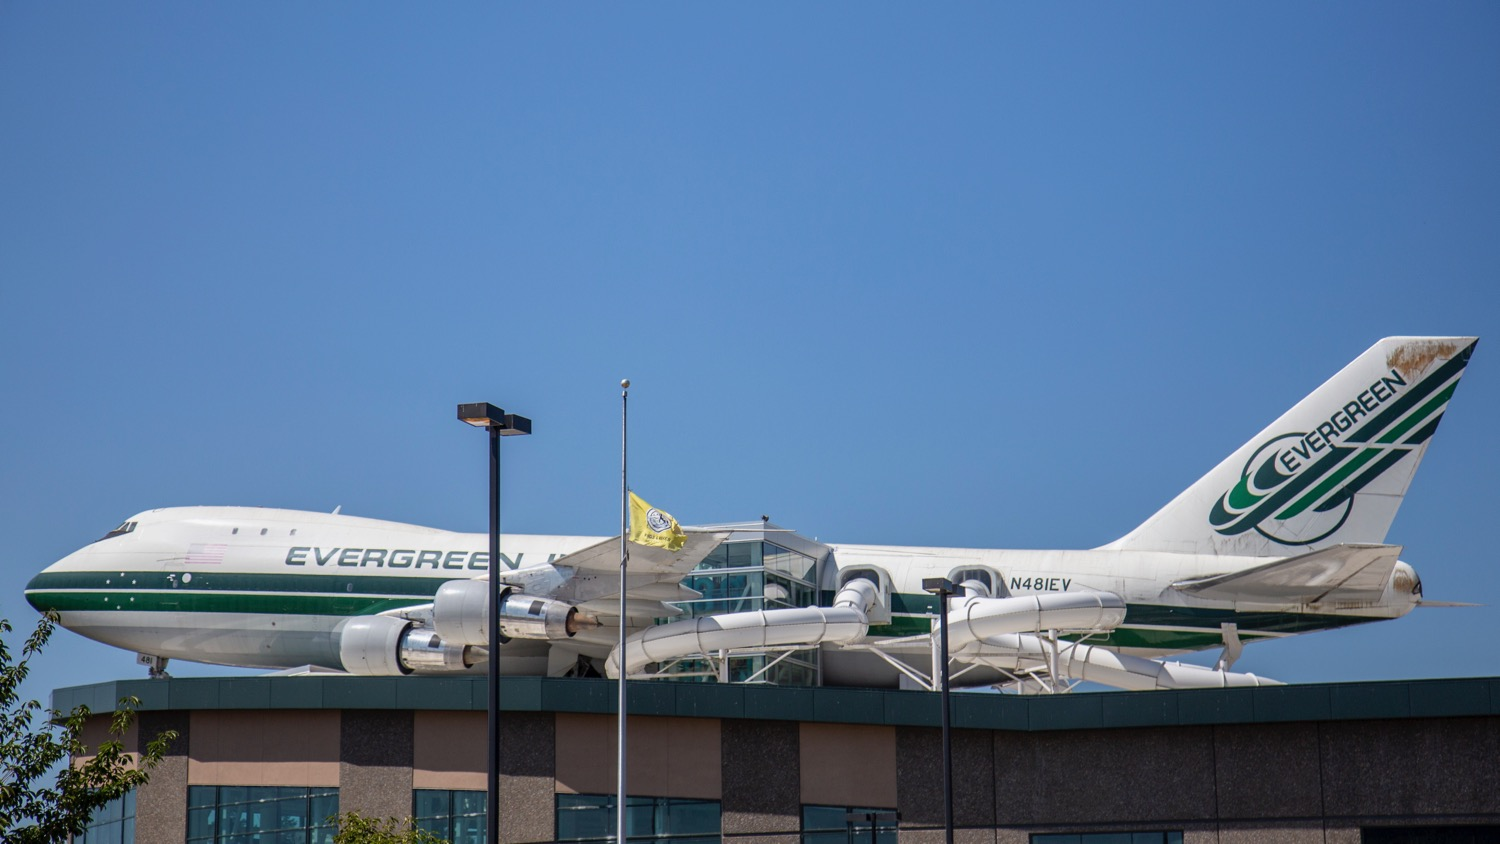 Seriously - the waterslides come out of the 747 on the roof of the place.